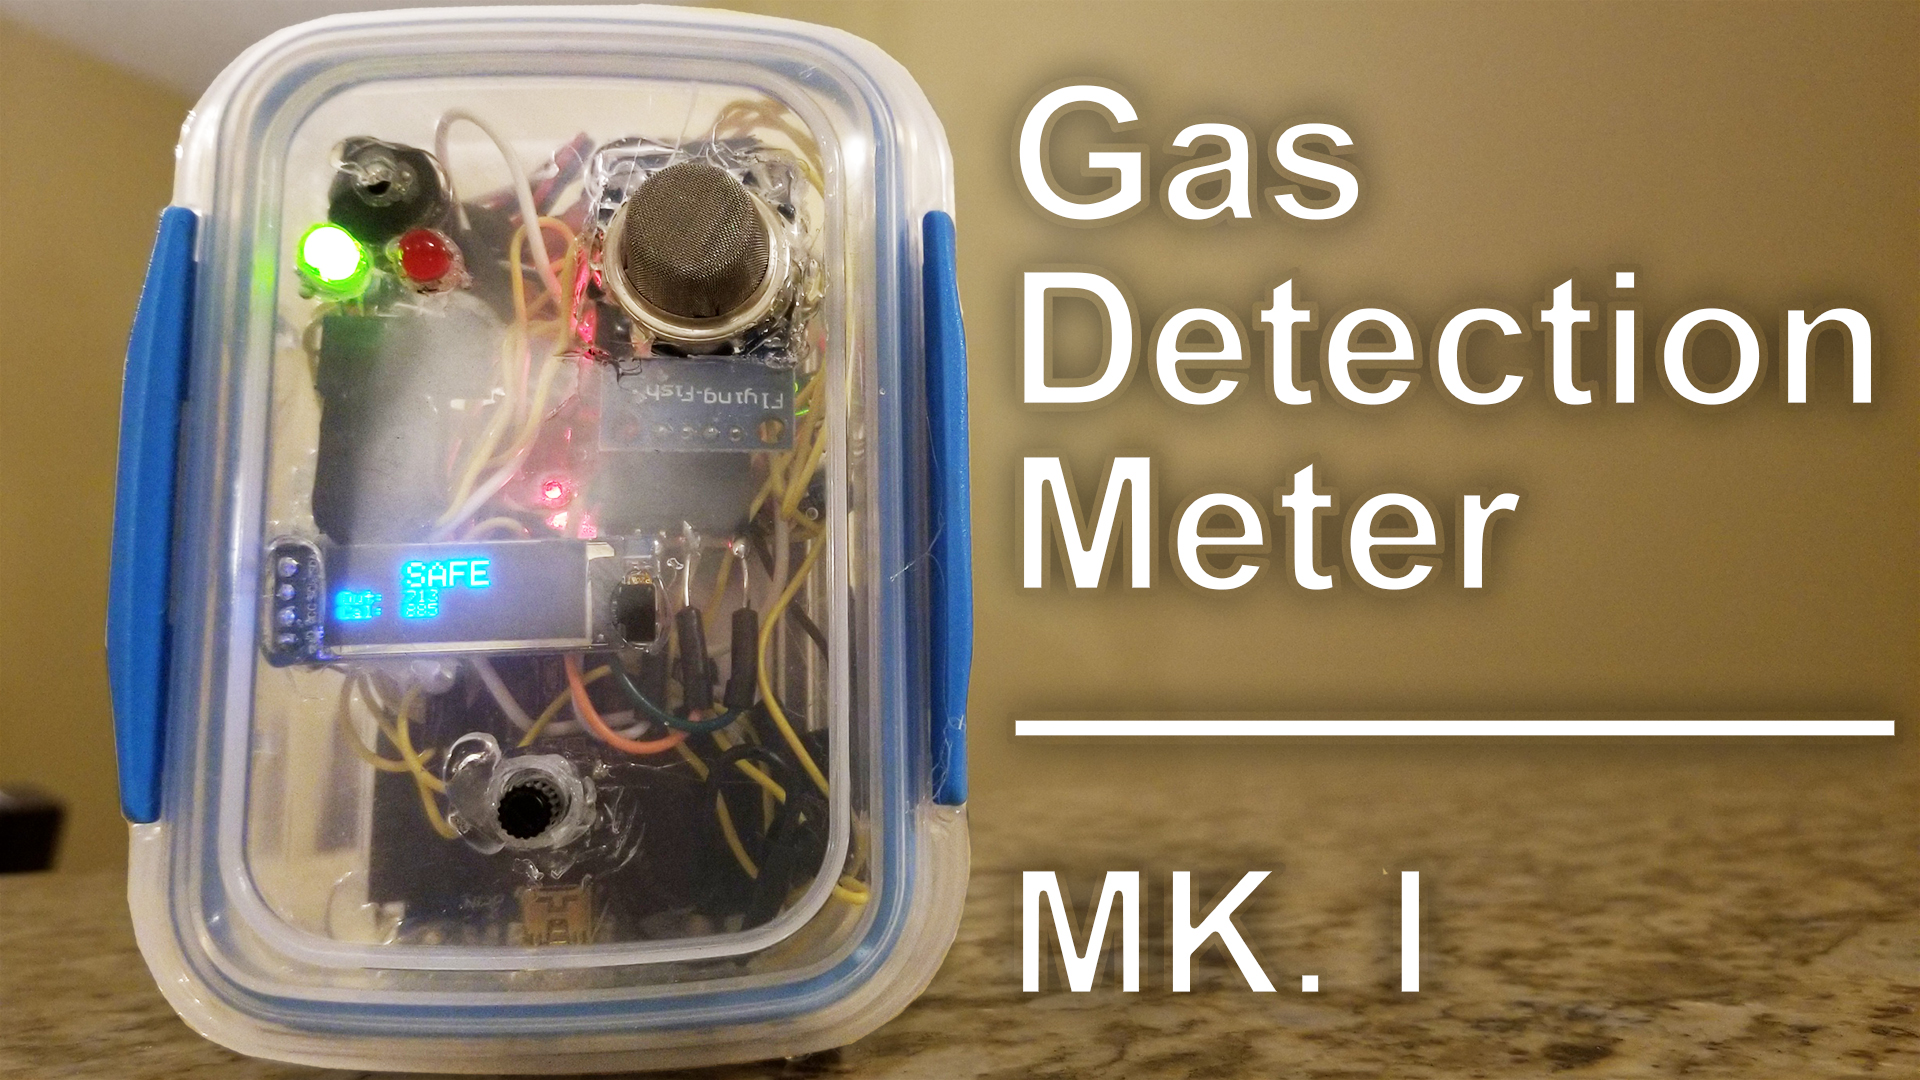 Arduino Gas Detection Meter Project - Mark I